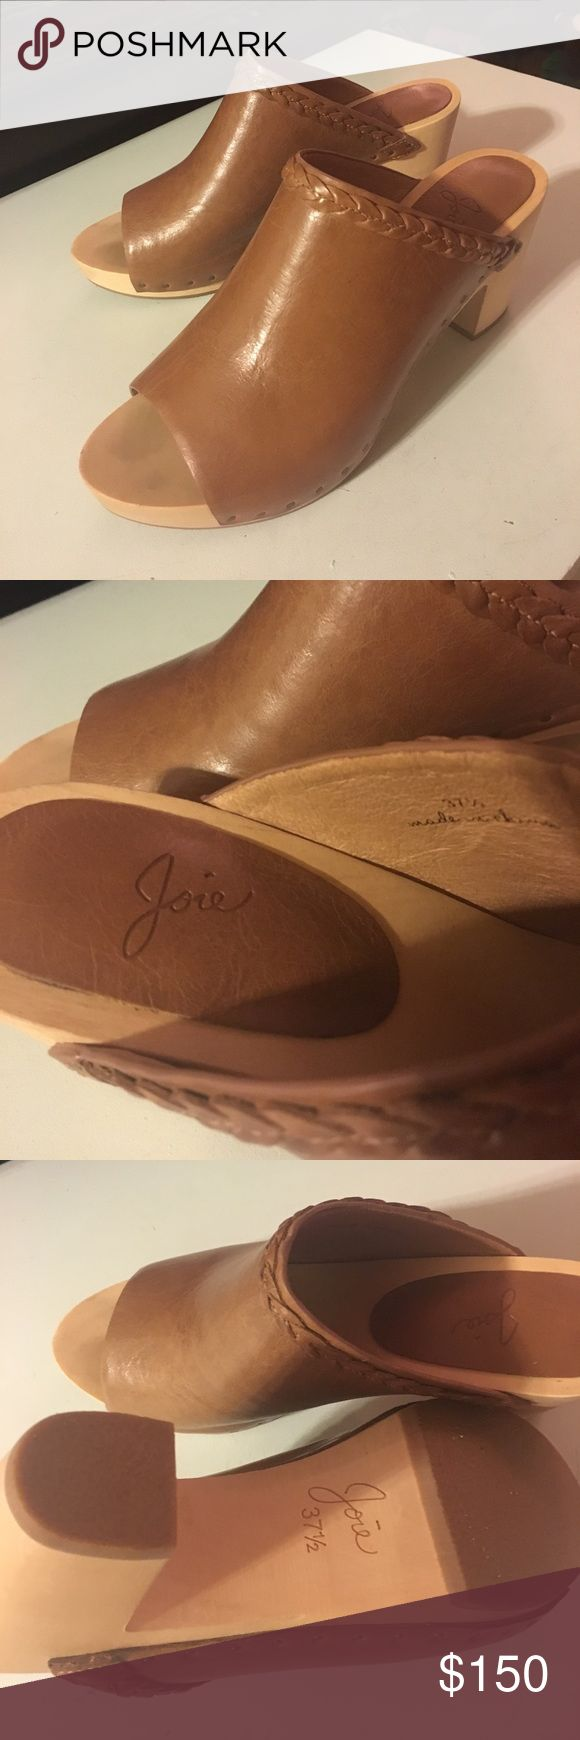 Joie leather braided clogs Light brown mule clogs with braided detail. Never worn. Size 37.5. Joie Shoes Mules & Clogs